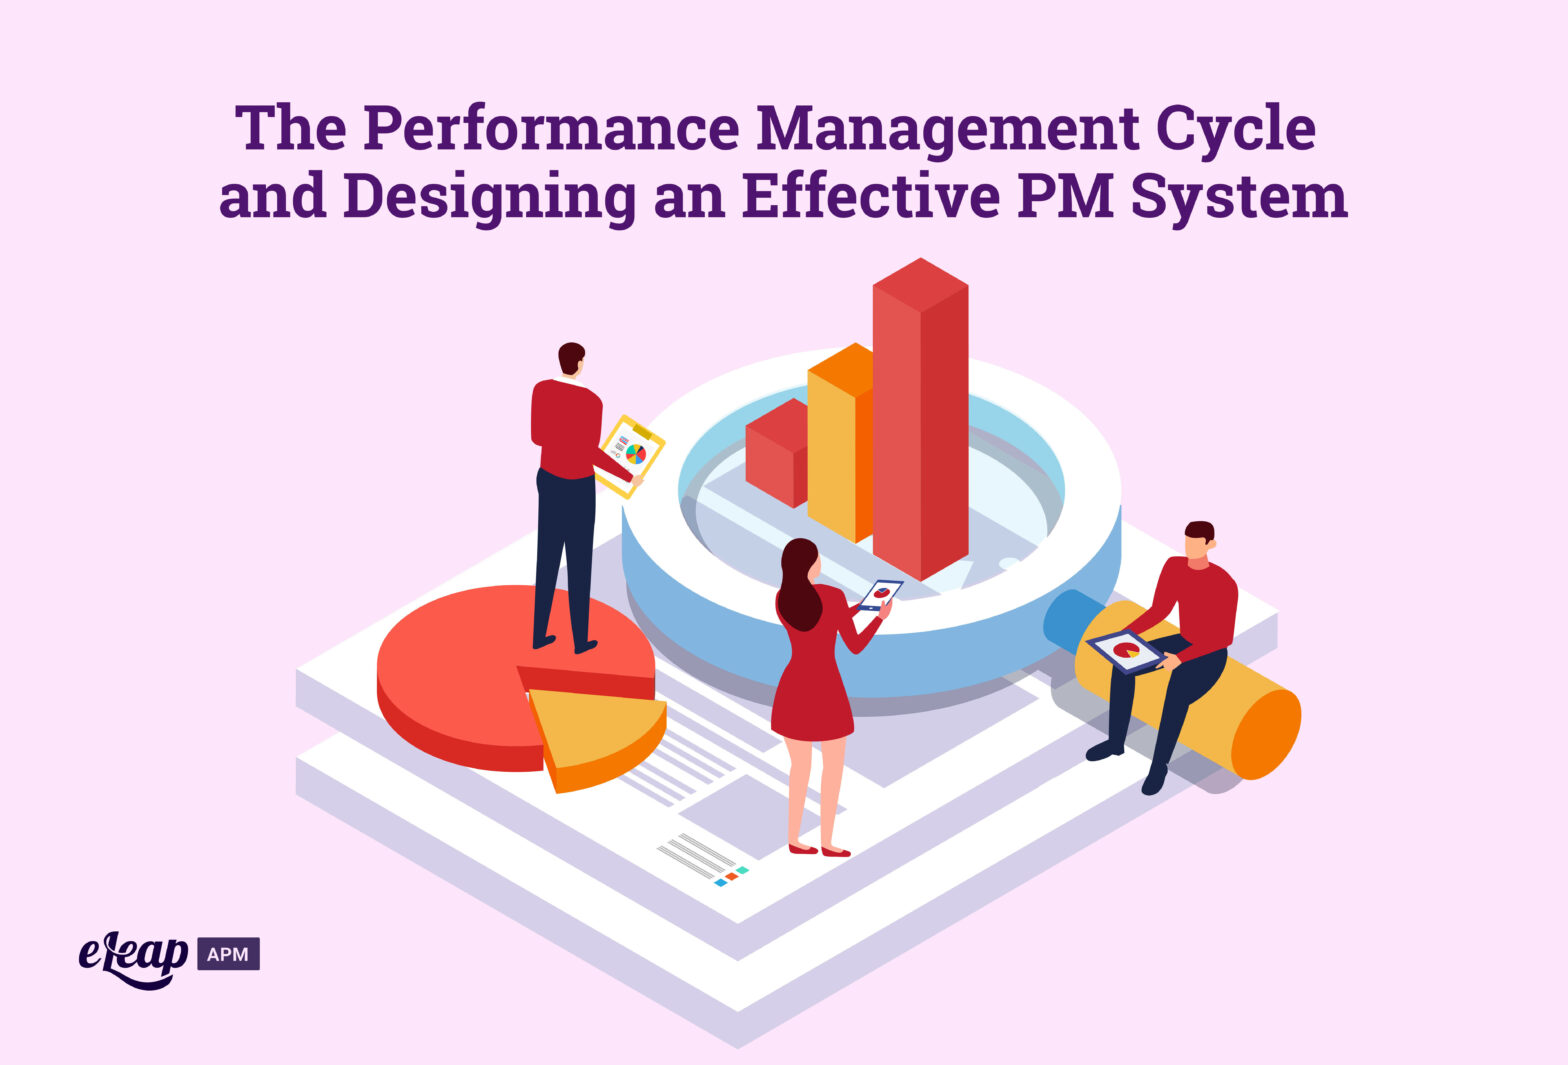 The Performance Management Cycle and Designing an Effective PM System